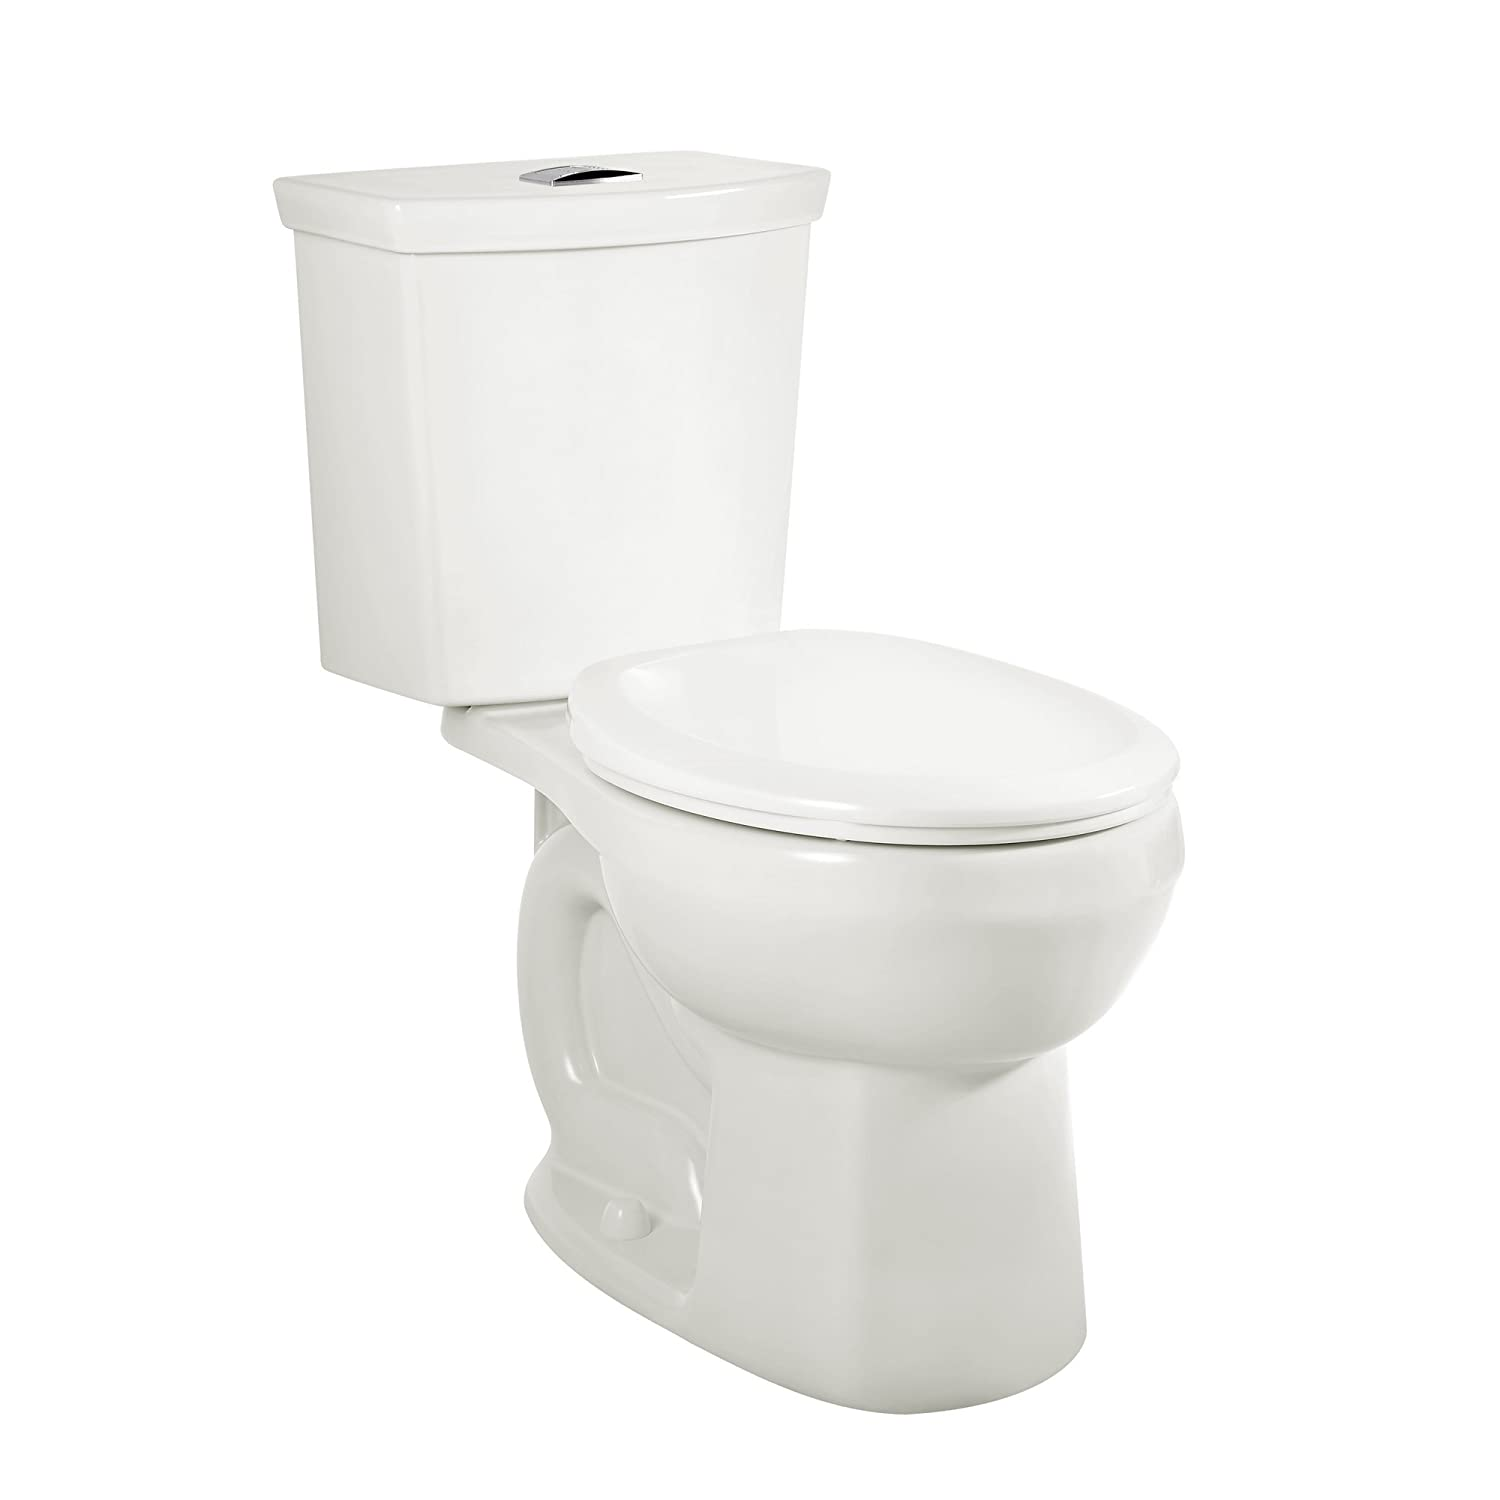 H2Option 2887218.020 Siphonic Dual Flush Normal Height Elongated Toilet